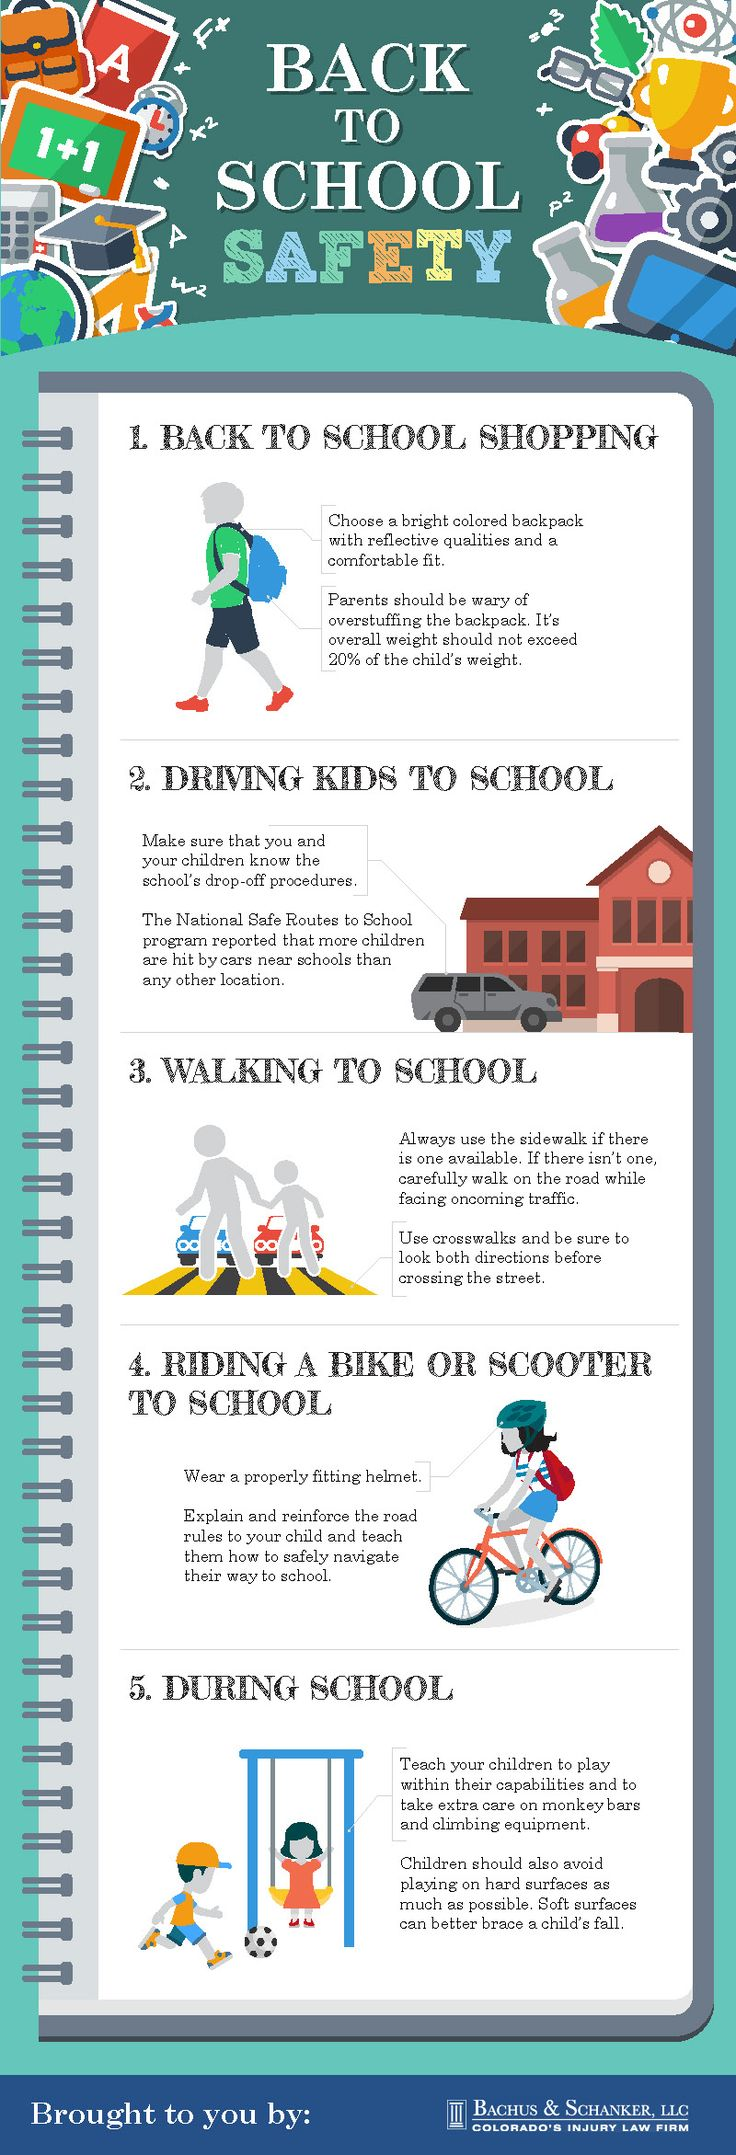 Back-to-School+Safety+for+Your+Little+Ones